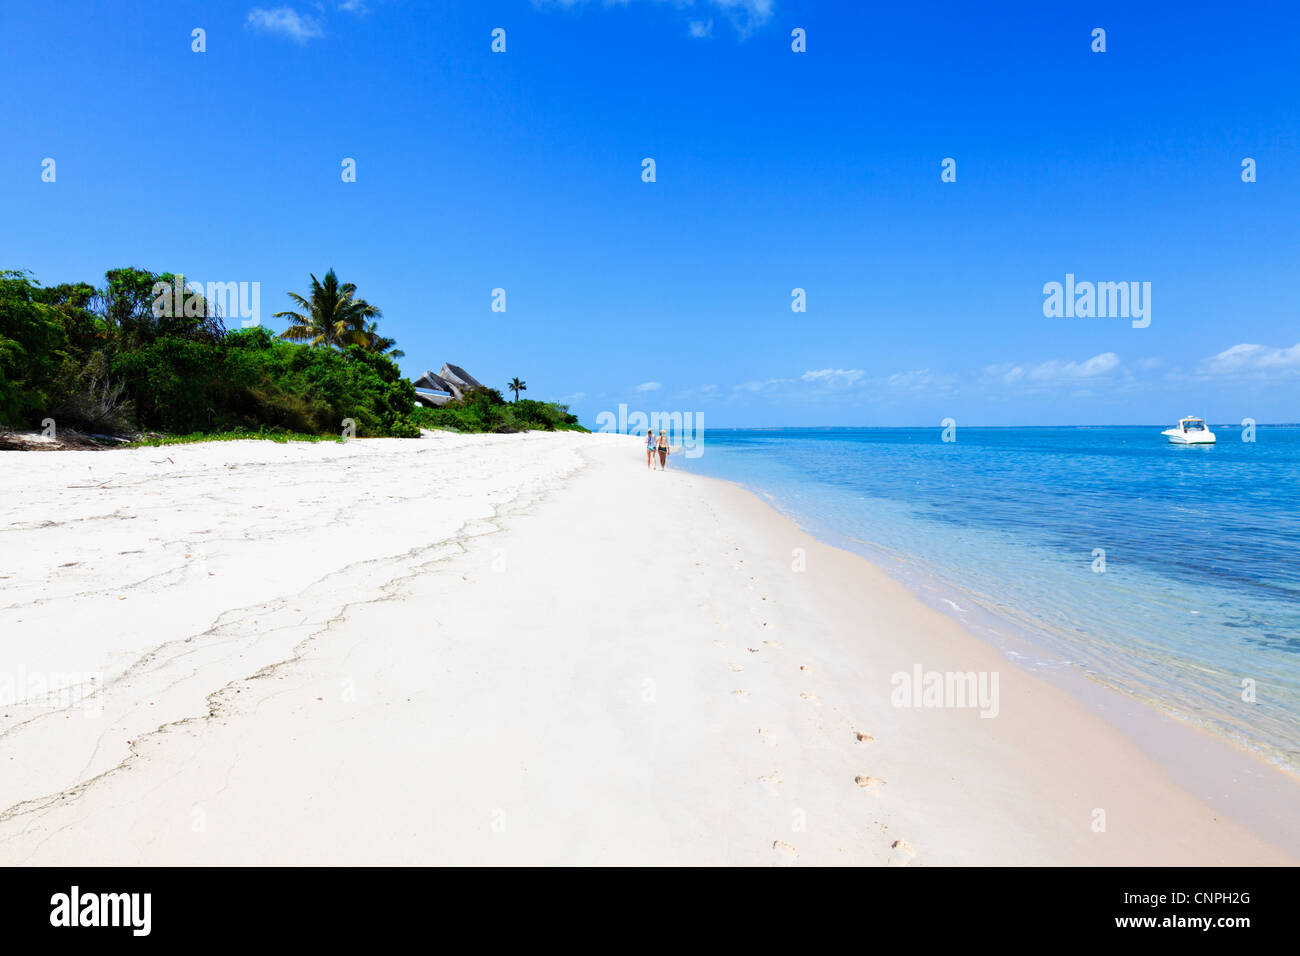 Women walking on island beach in the Mozambique archipelago. - Stock Image